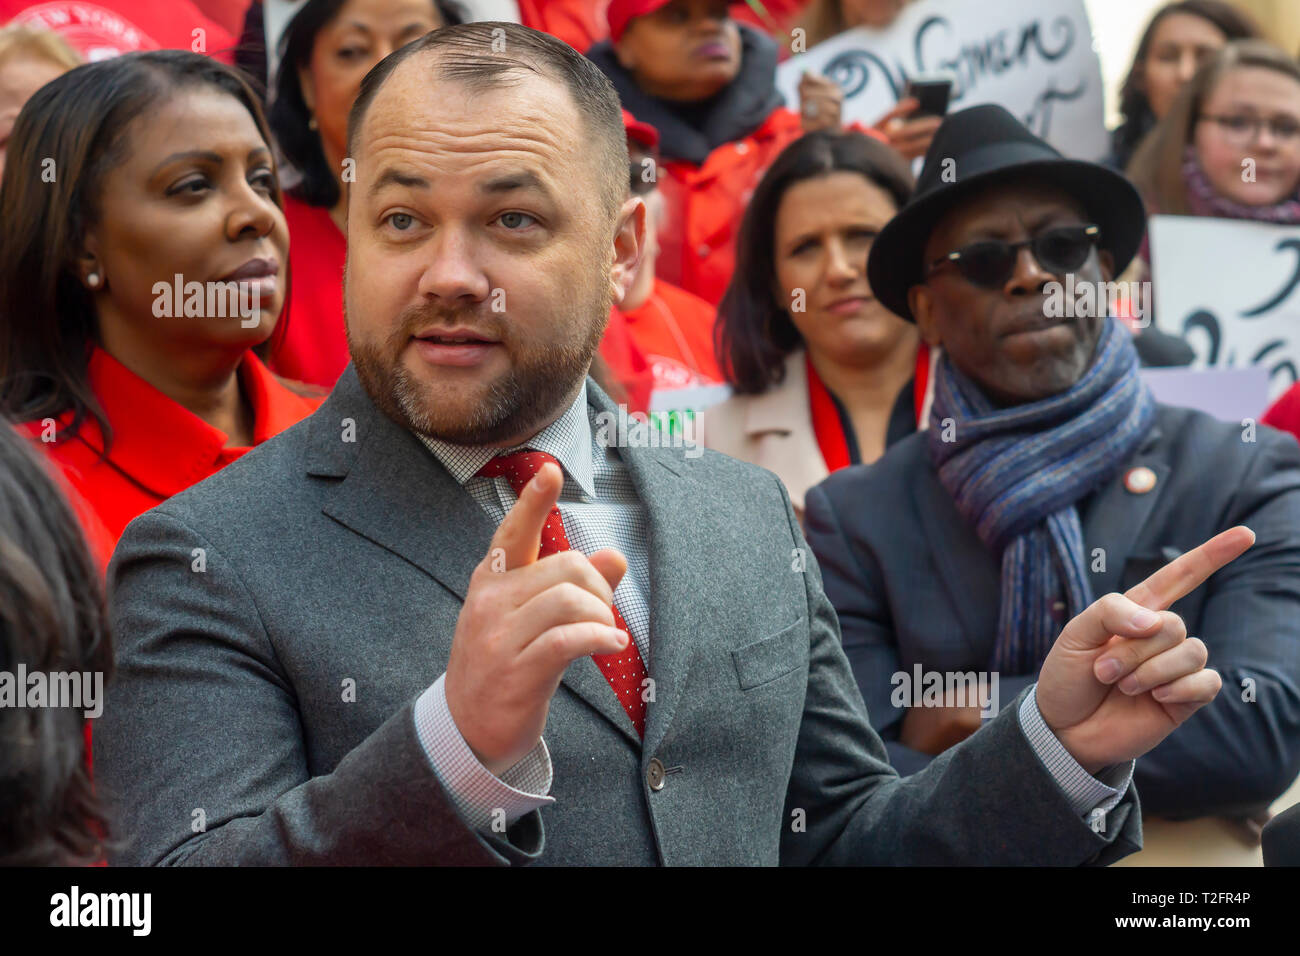 New York, USA. 02nd Apr, 2019. NYC Council Speaker Corey Johnson joins activists, community leaders, union members and other politicians on the steps of City Hall in New York on Tuesday, April 2, 2019 to rally against pay disparity on the 13th annual Equal Pay Day. Worldwide women on average earn 87 cents for every dollar her male counterpart earns with dramatic adjustments for women of color. Credit: Richard Levine/Alamy Live News - Stock Image